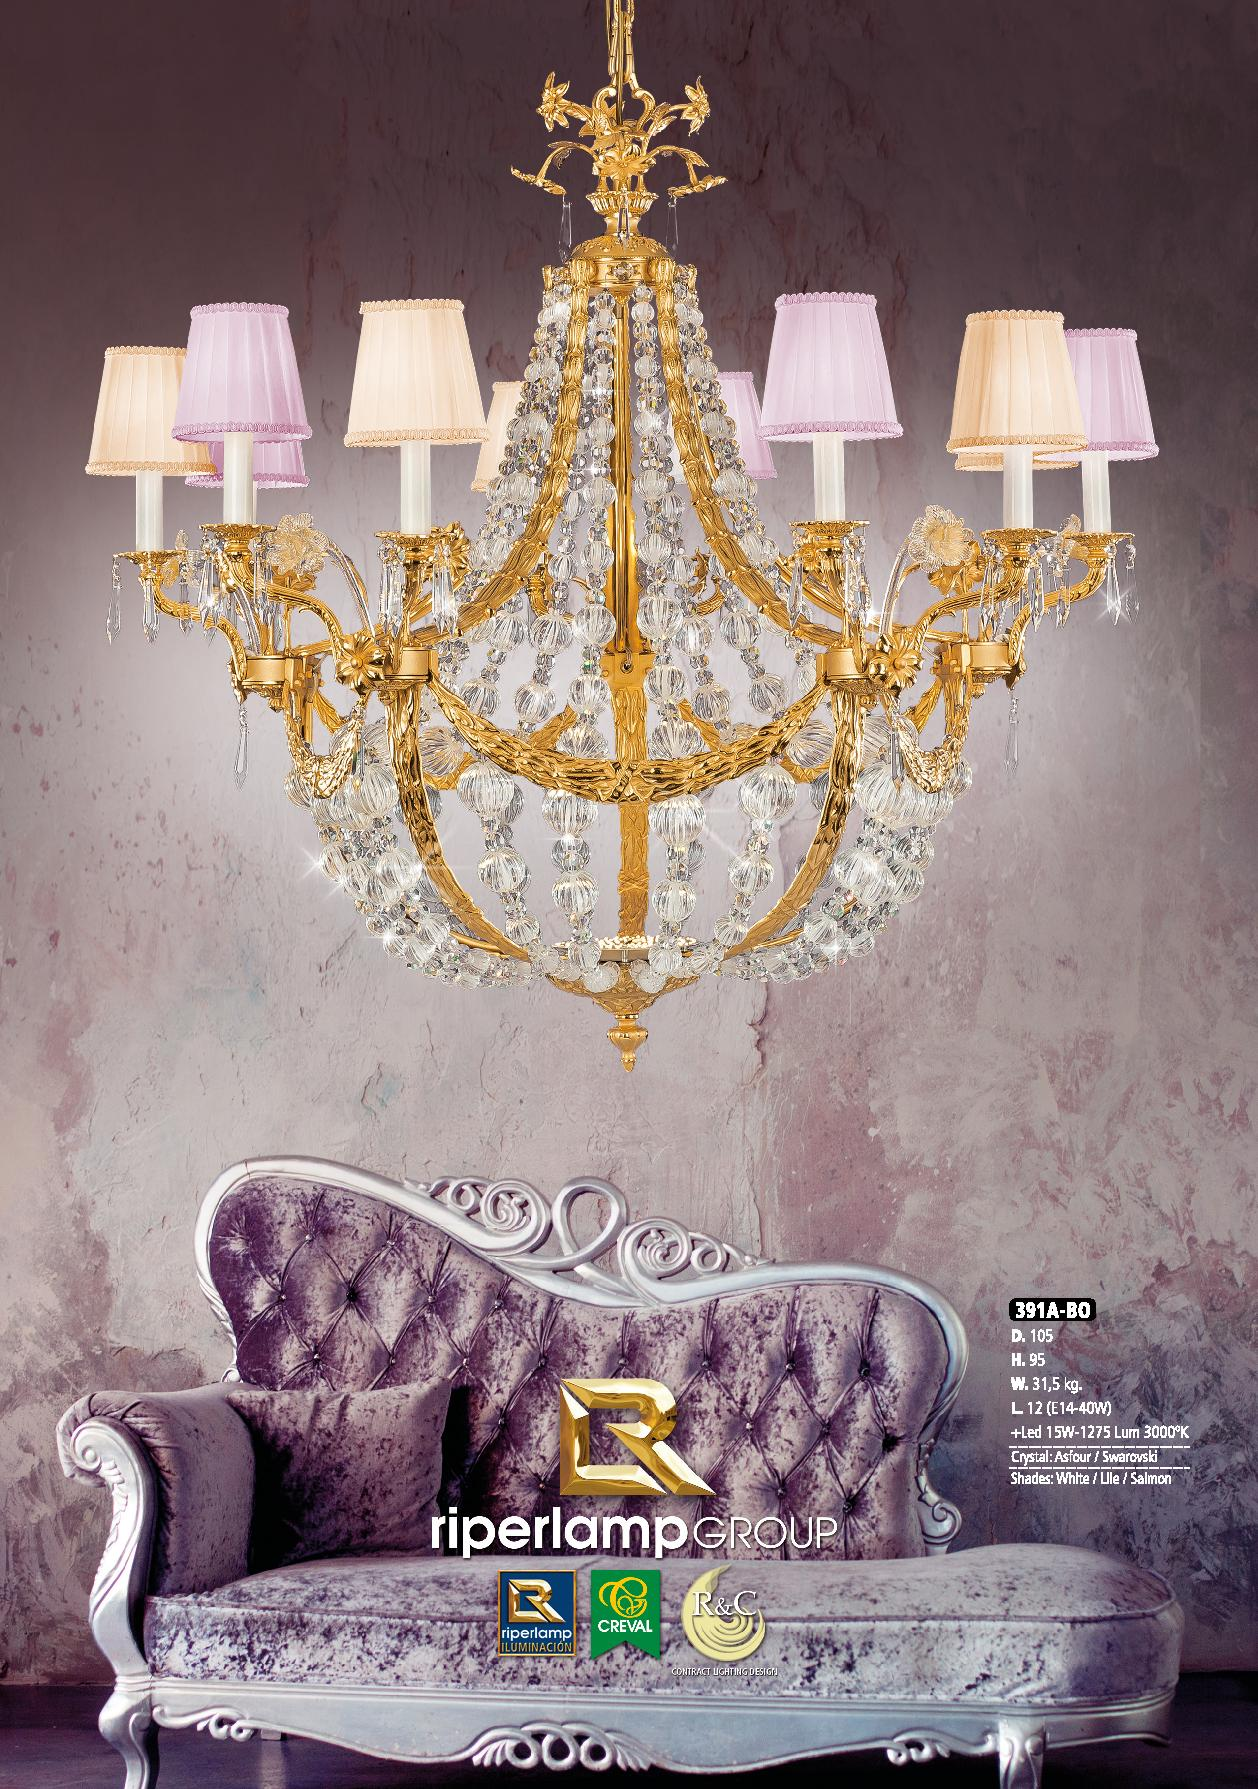 Riperlamp will show five new collections